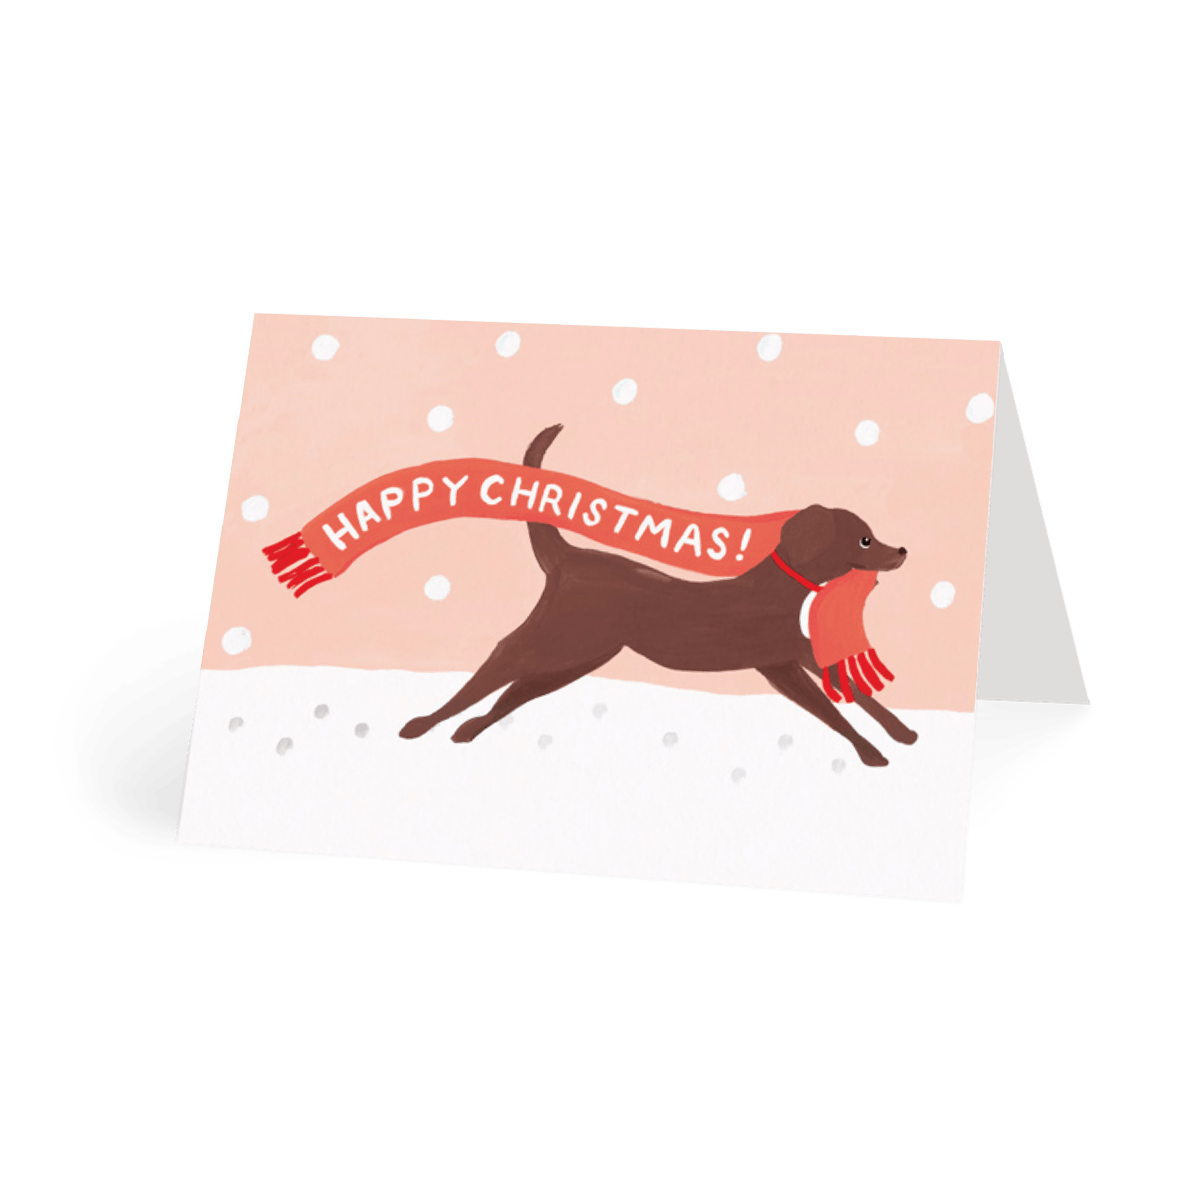 Https%3a%2f%2fwww.papier.com%2fproduct image%2f24657%2f14%2fhappy christmas dog 6164 front 1498576239.png?ixlib=rb 1.1